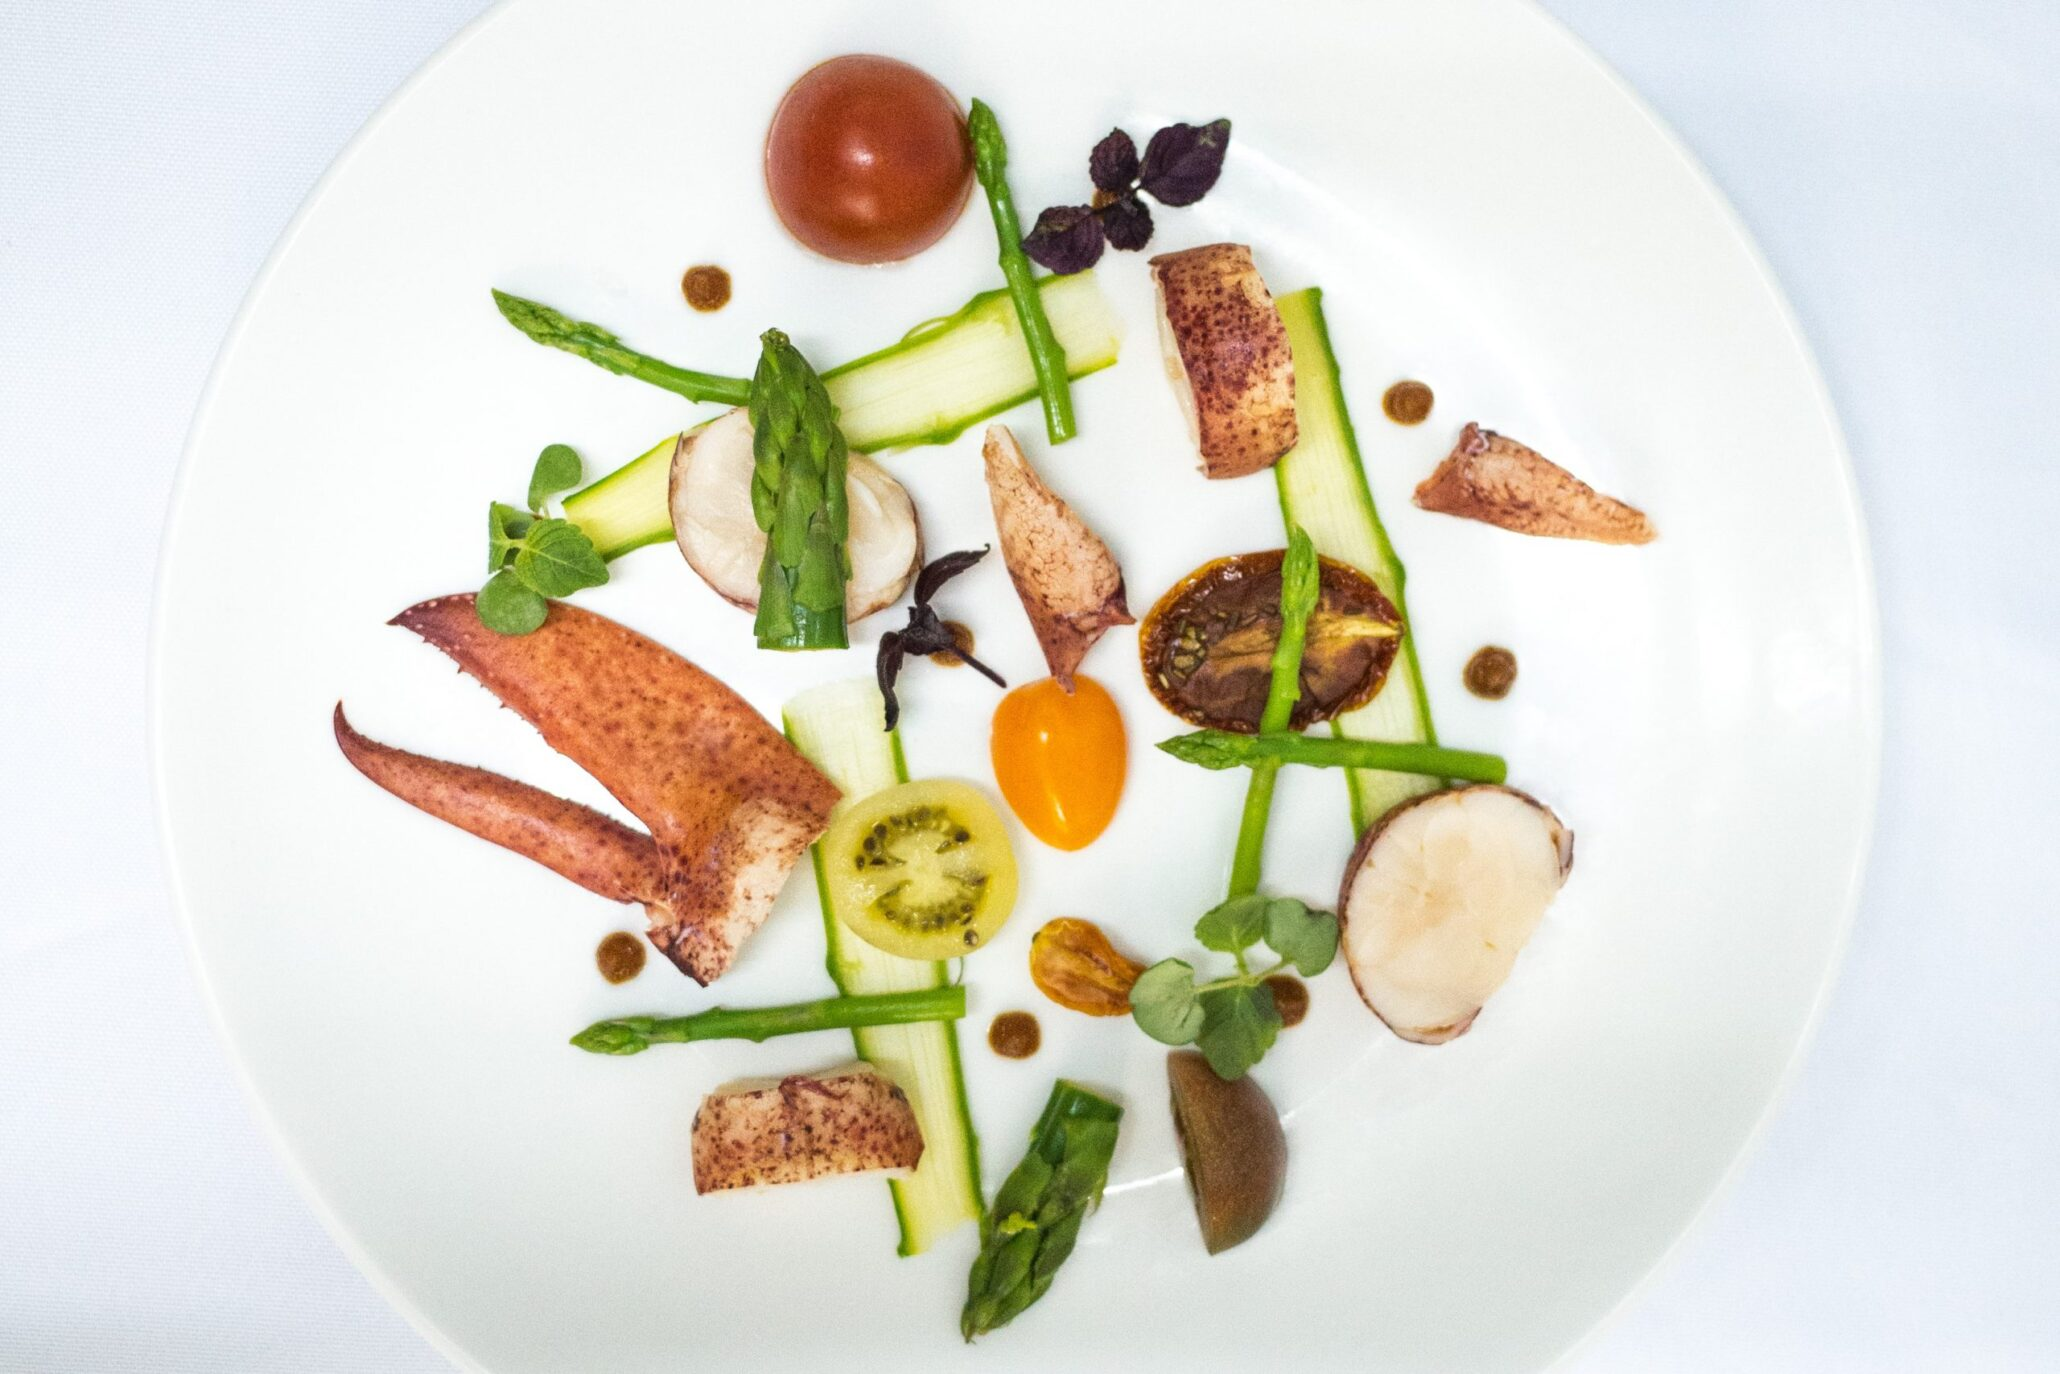 Hong Kong Personal chef's lobster and vegetables on a white plate